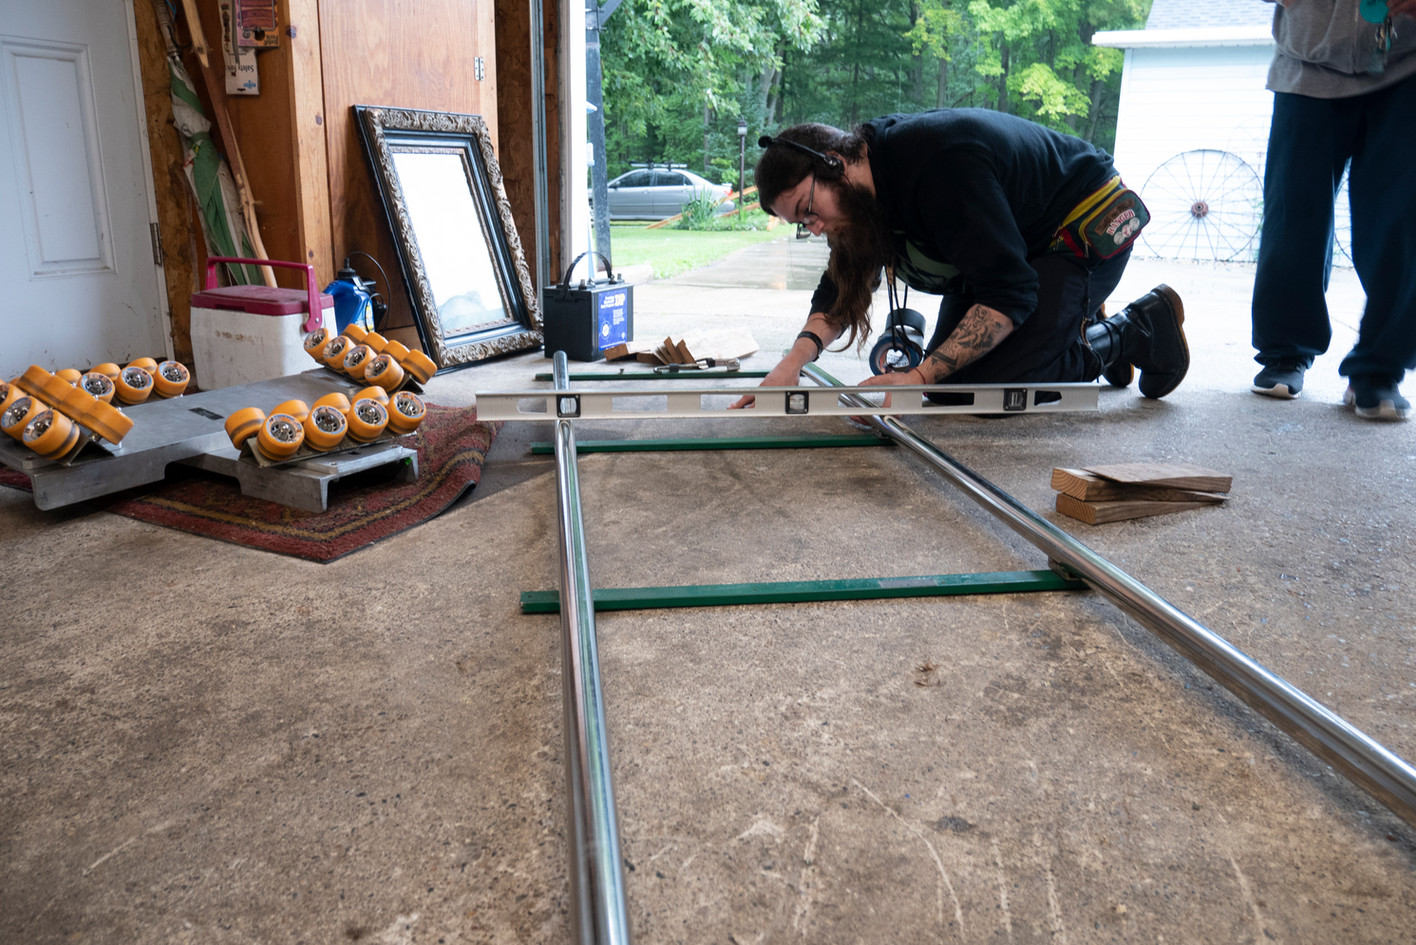 Laying Dolly track